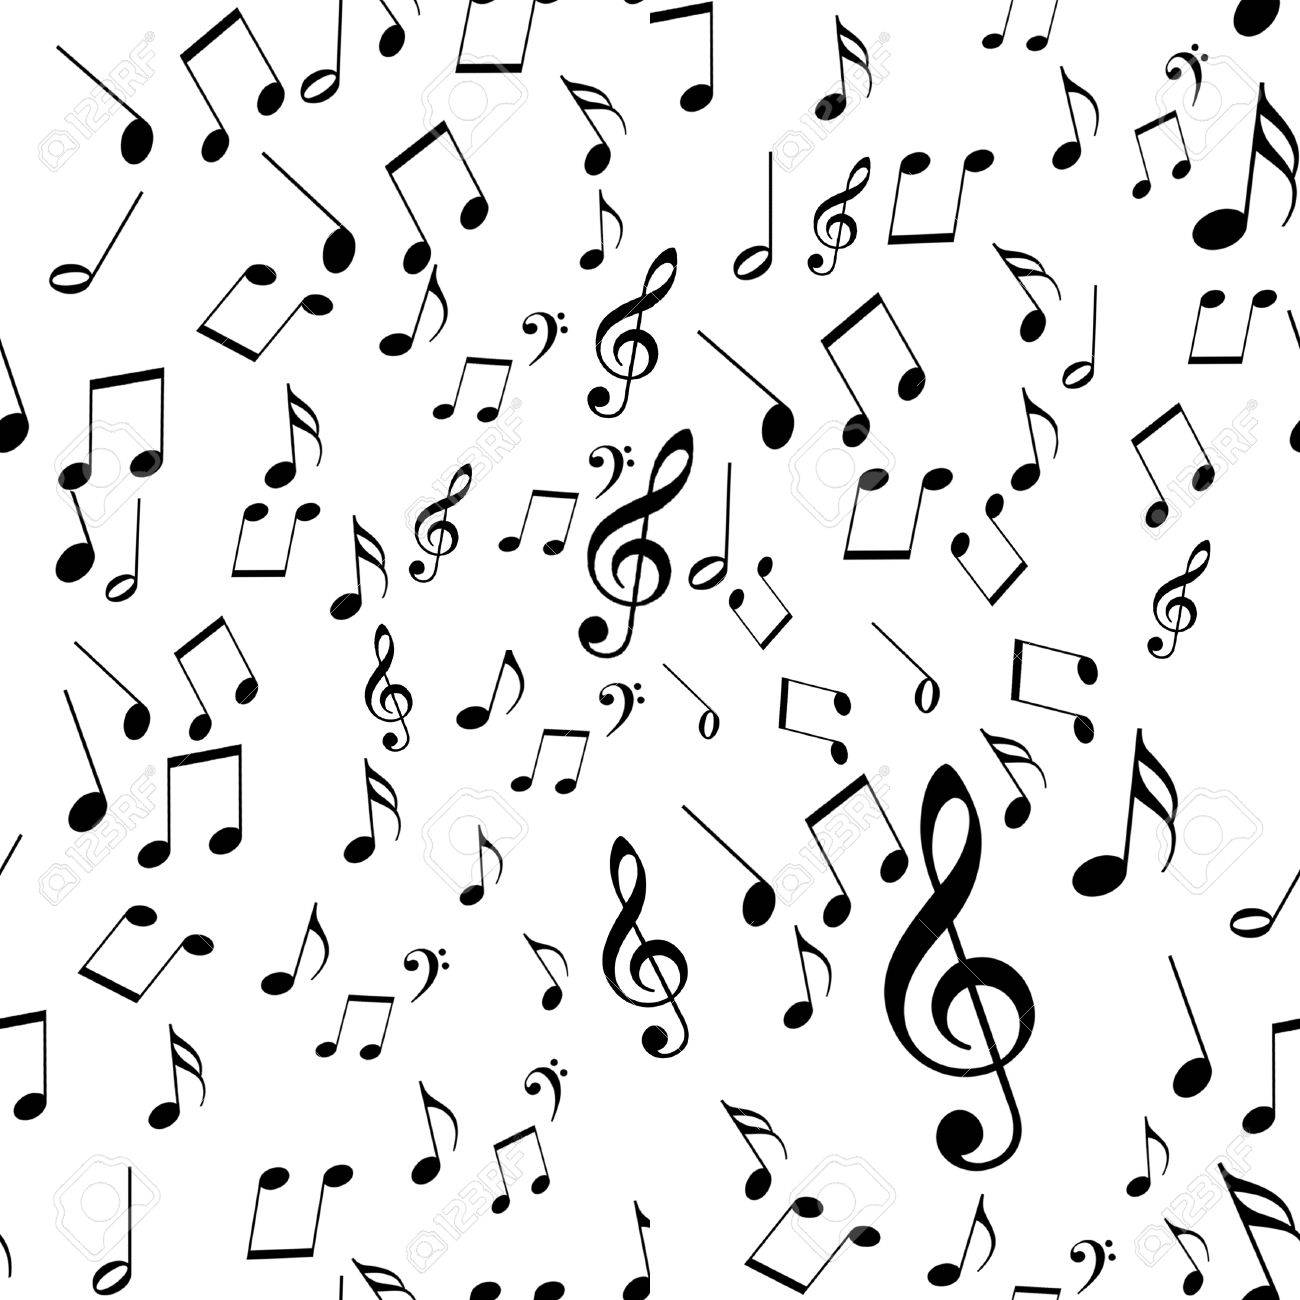 Black music notes on a solid white background stock photo picture black music notes on a solid white background stock photo 22226392 voltagebd Image collections